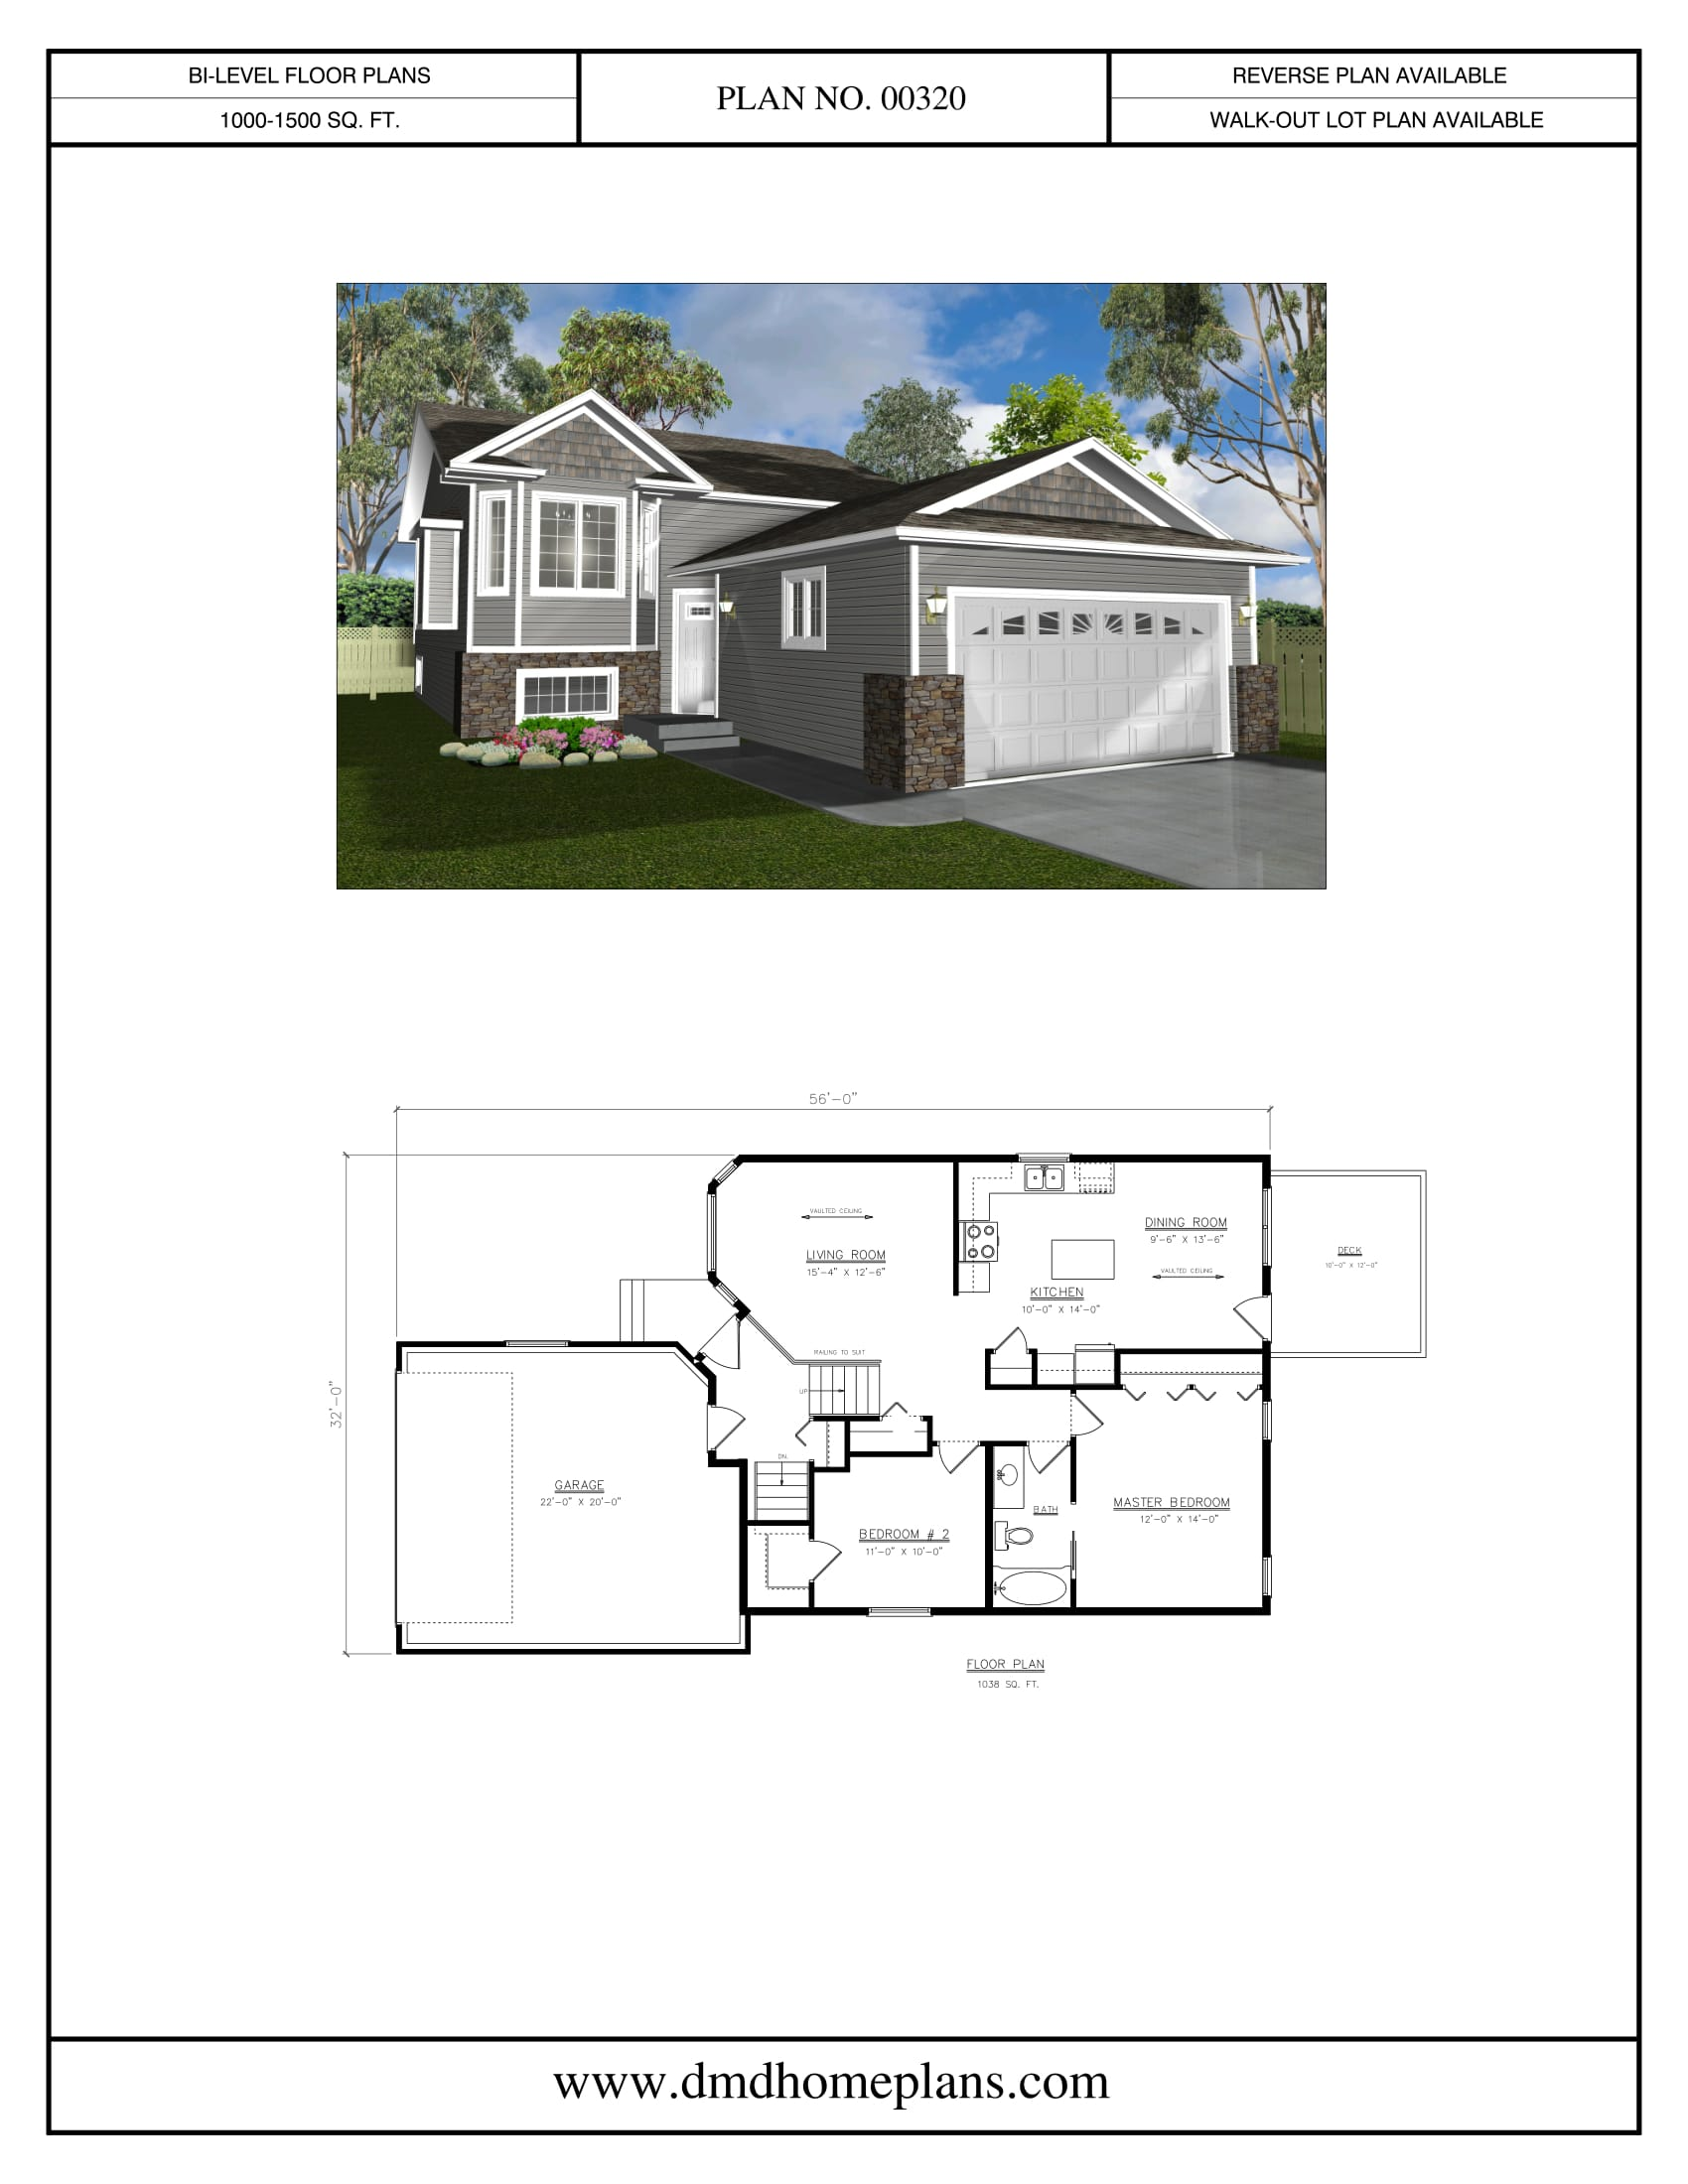 Bi level plans with garage dmd home plans Bi level house plans with garage